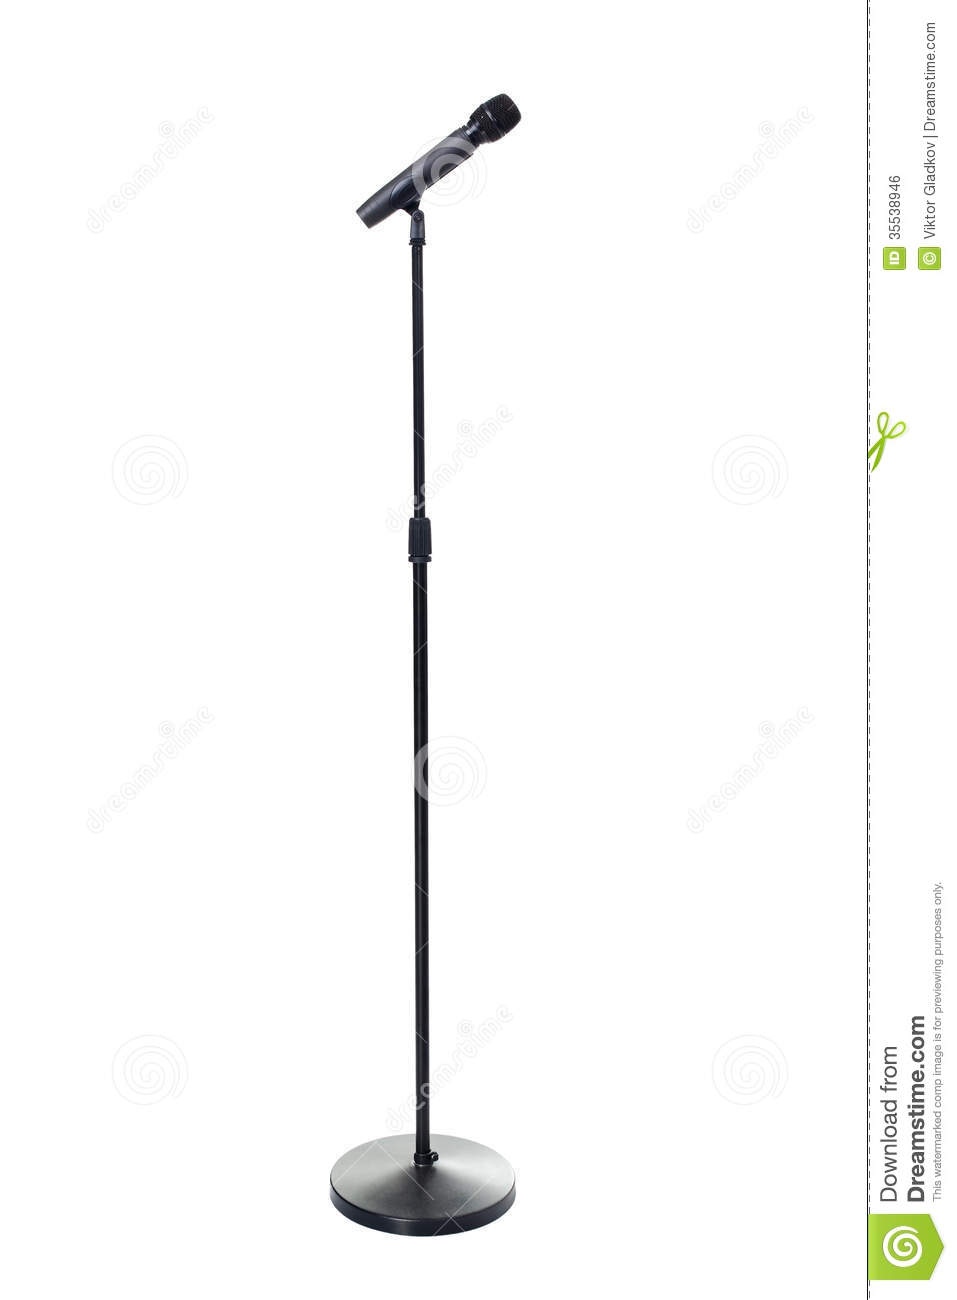 Microphone With Stand Drawing Microphone and stand